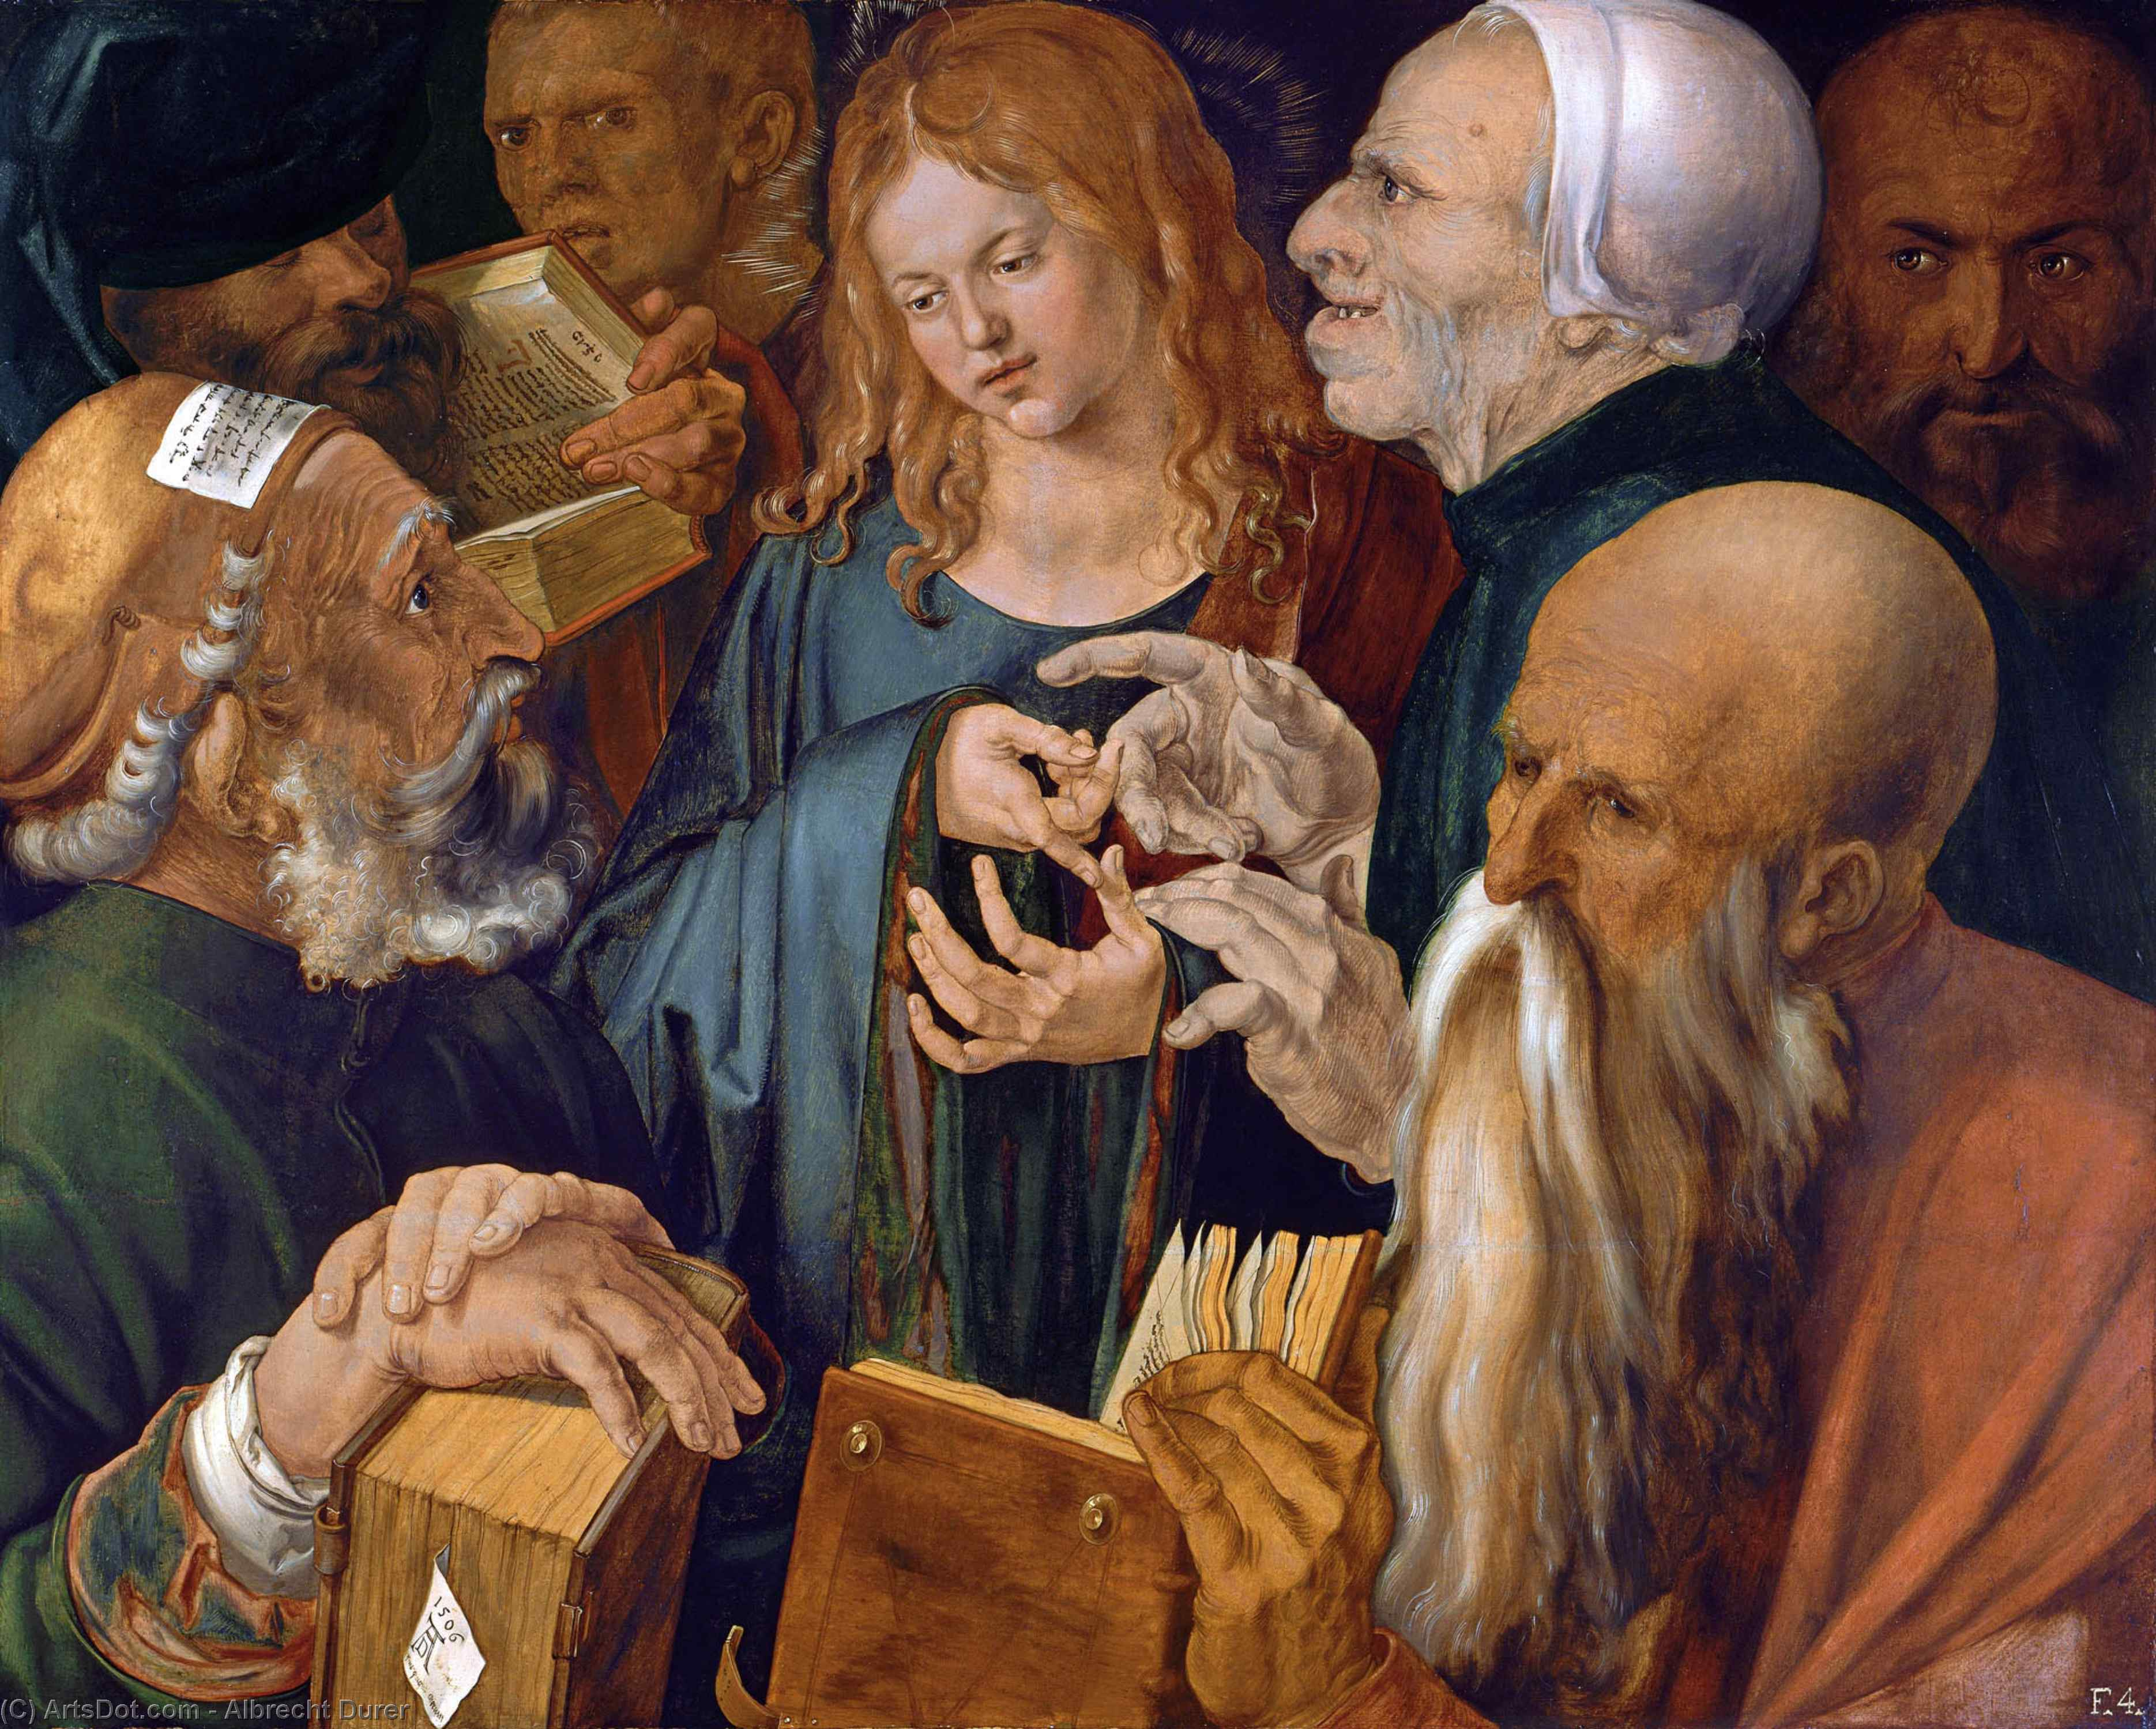 Wikioo.org - The Encyclopedia of Fine Arts - Painting, Artwork by Albrecht Durer - Christ Among the Doctors